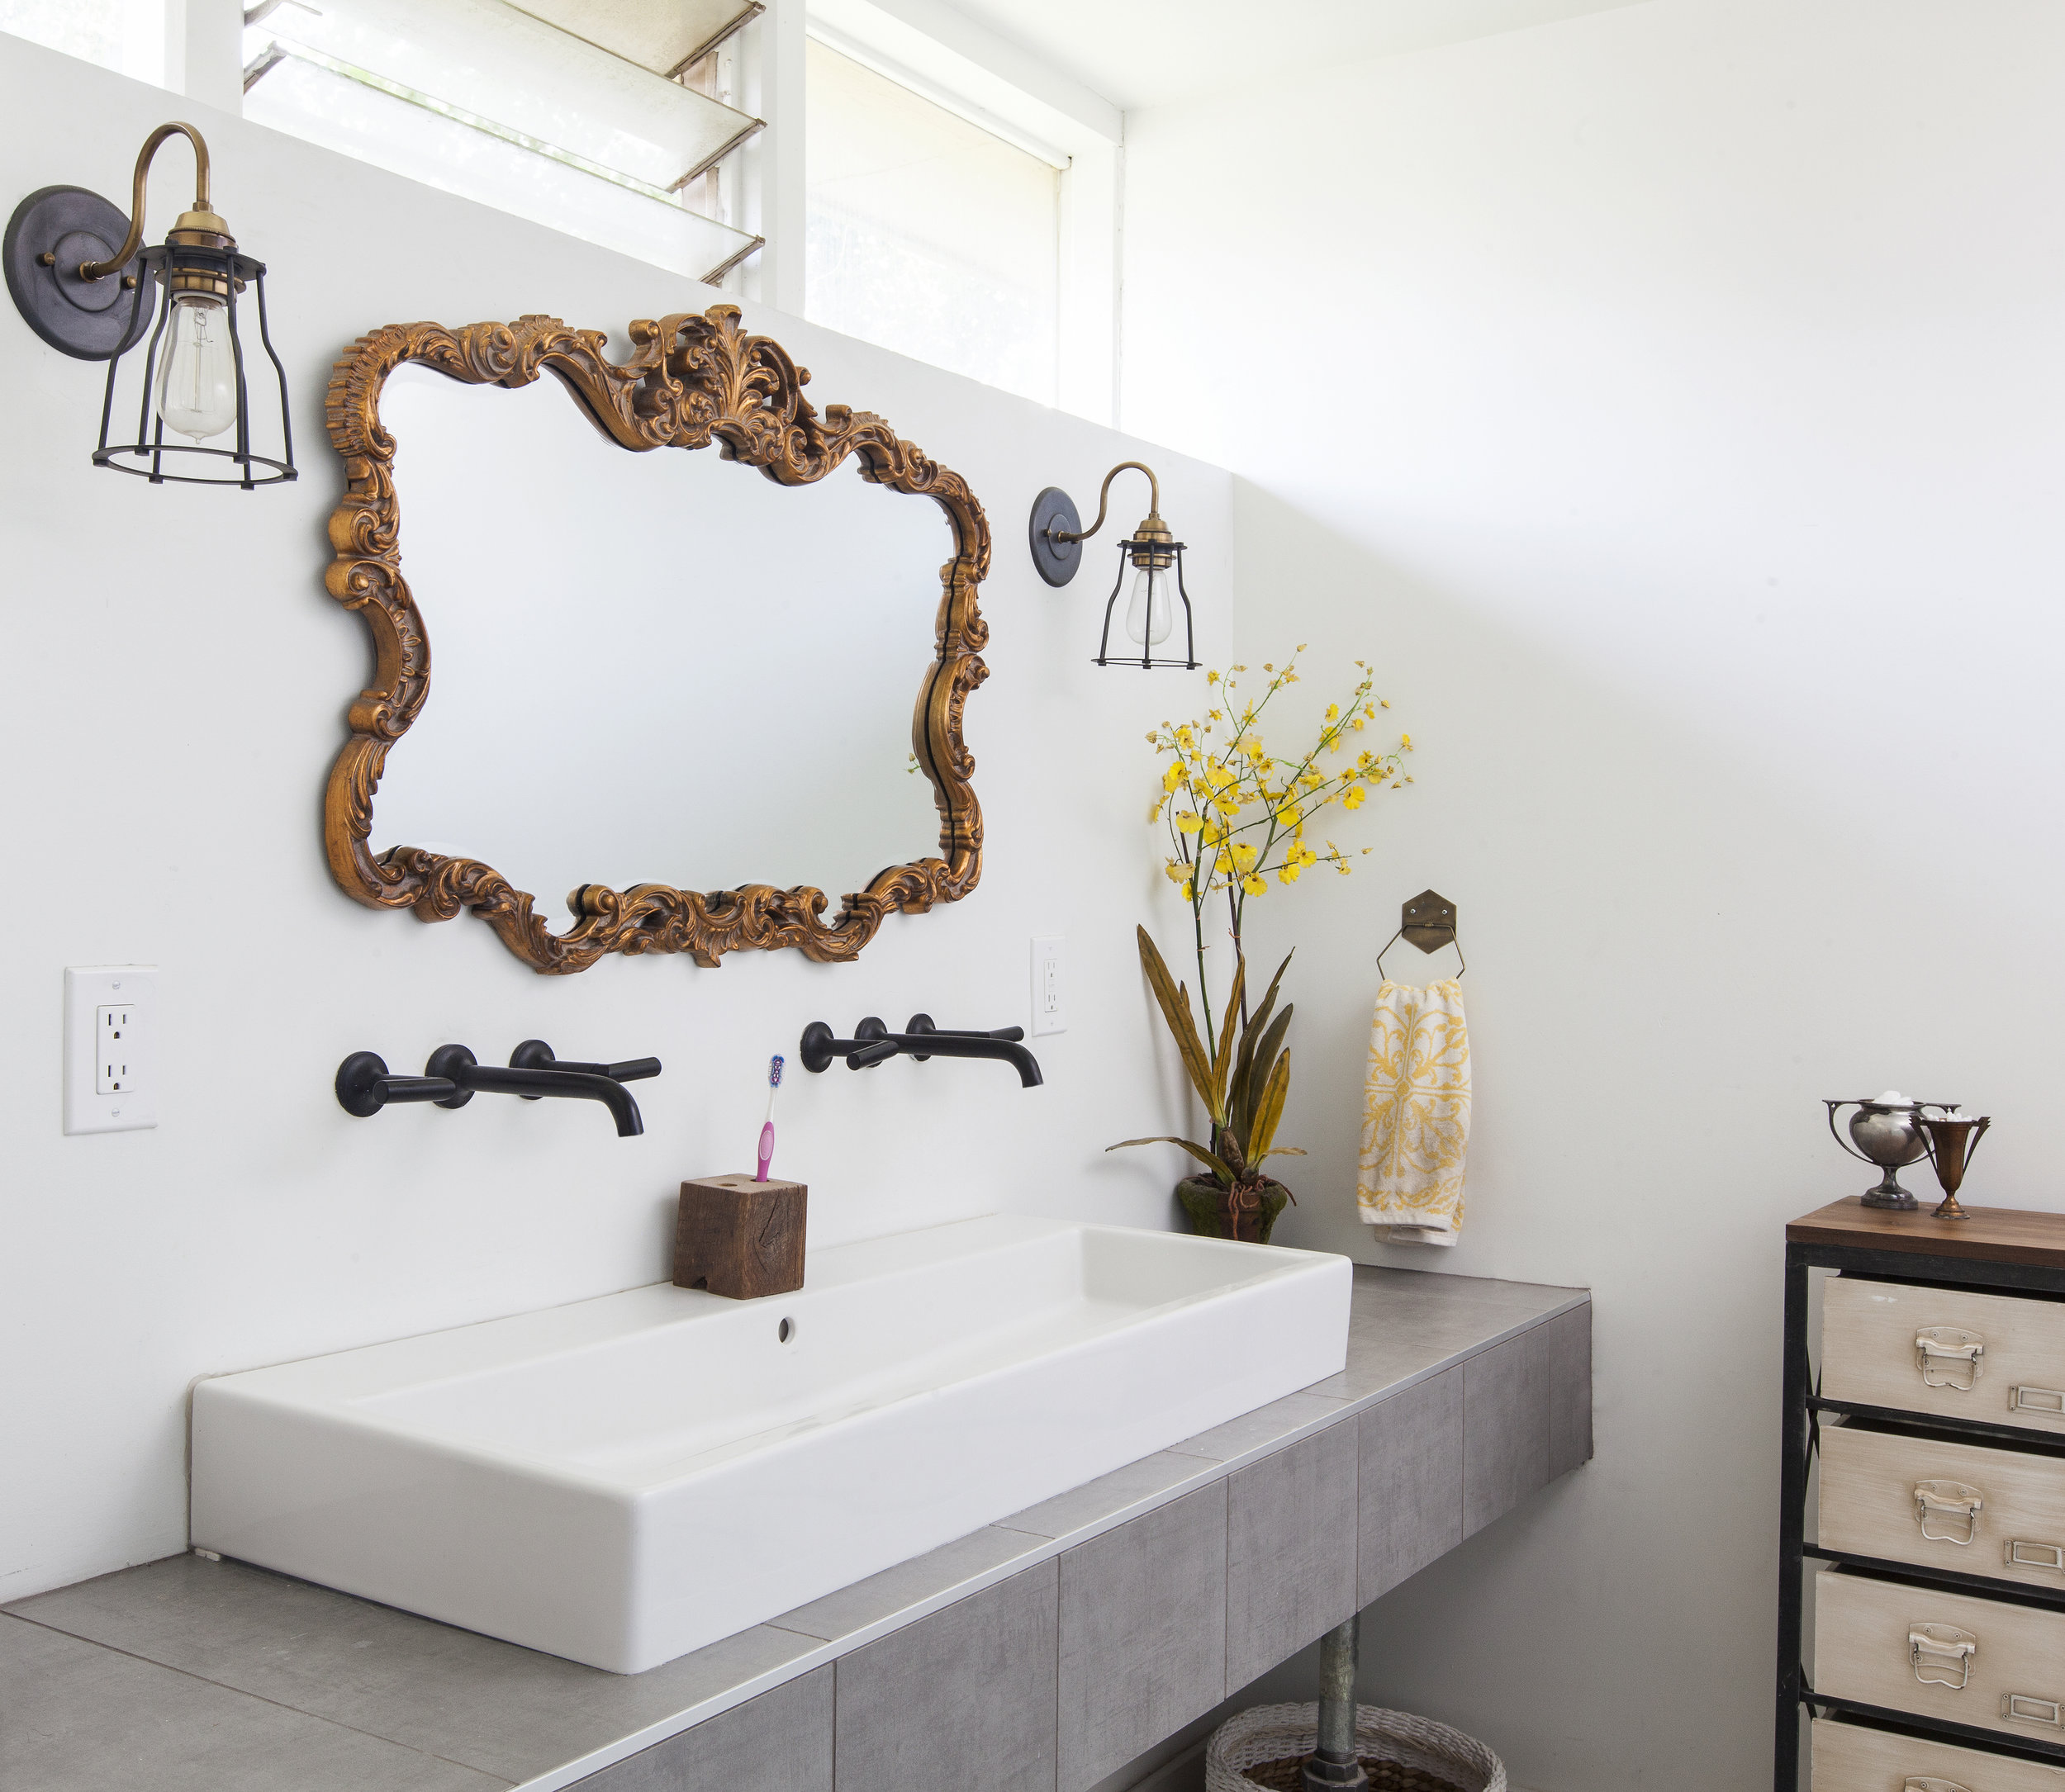 Minimal, chic Jason Wu for Brizo faucets and a sleek, double wide sink in my master bathroom